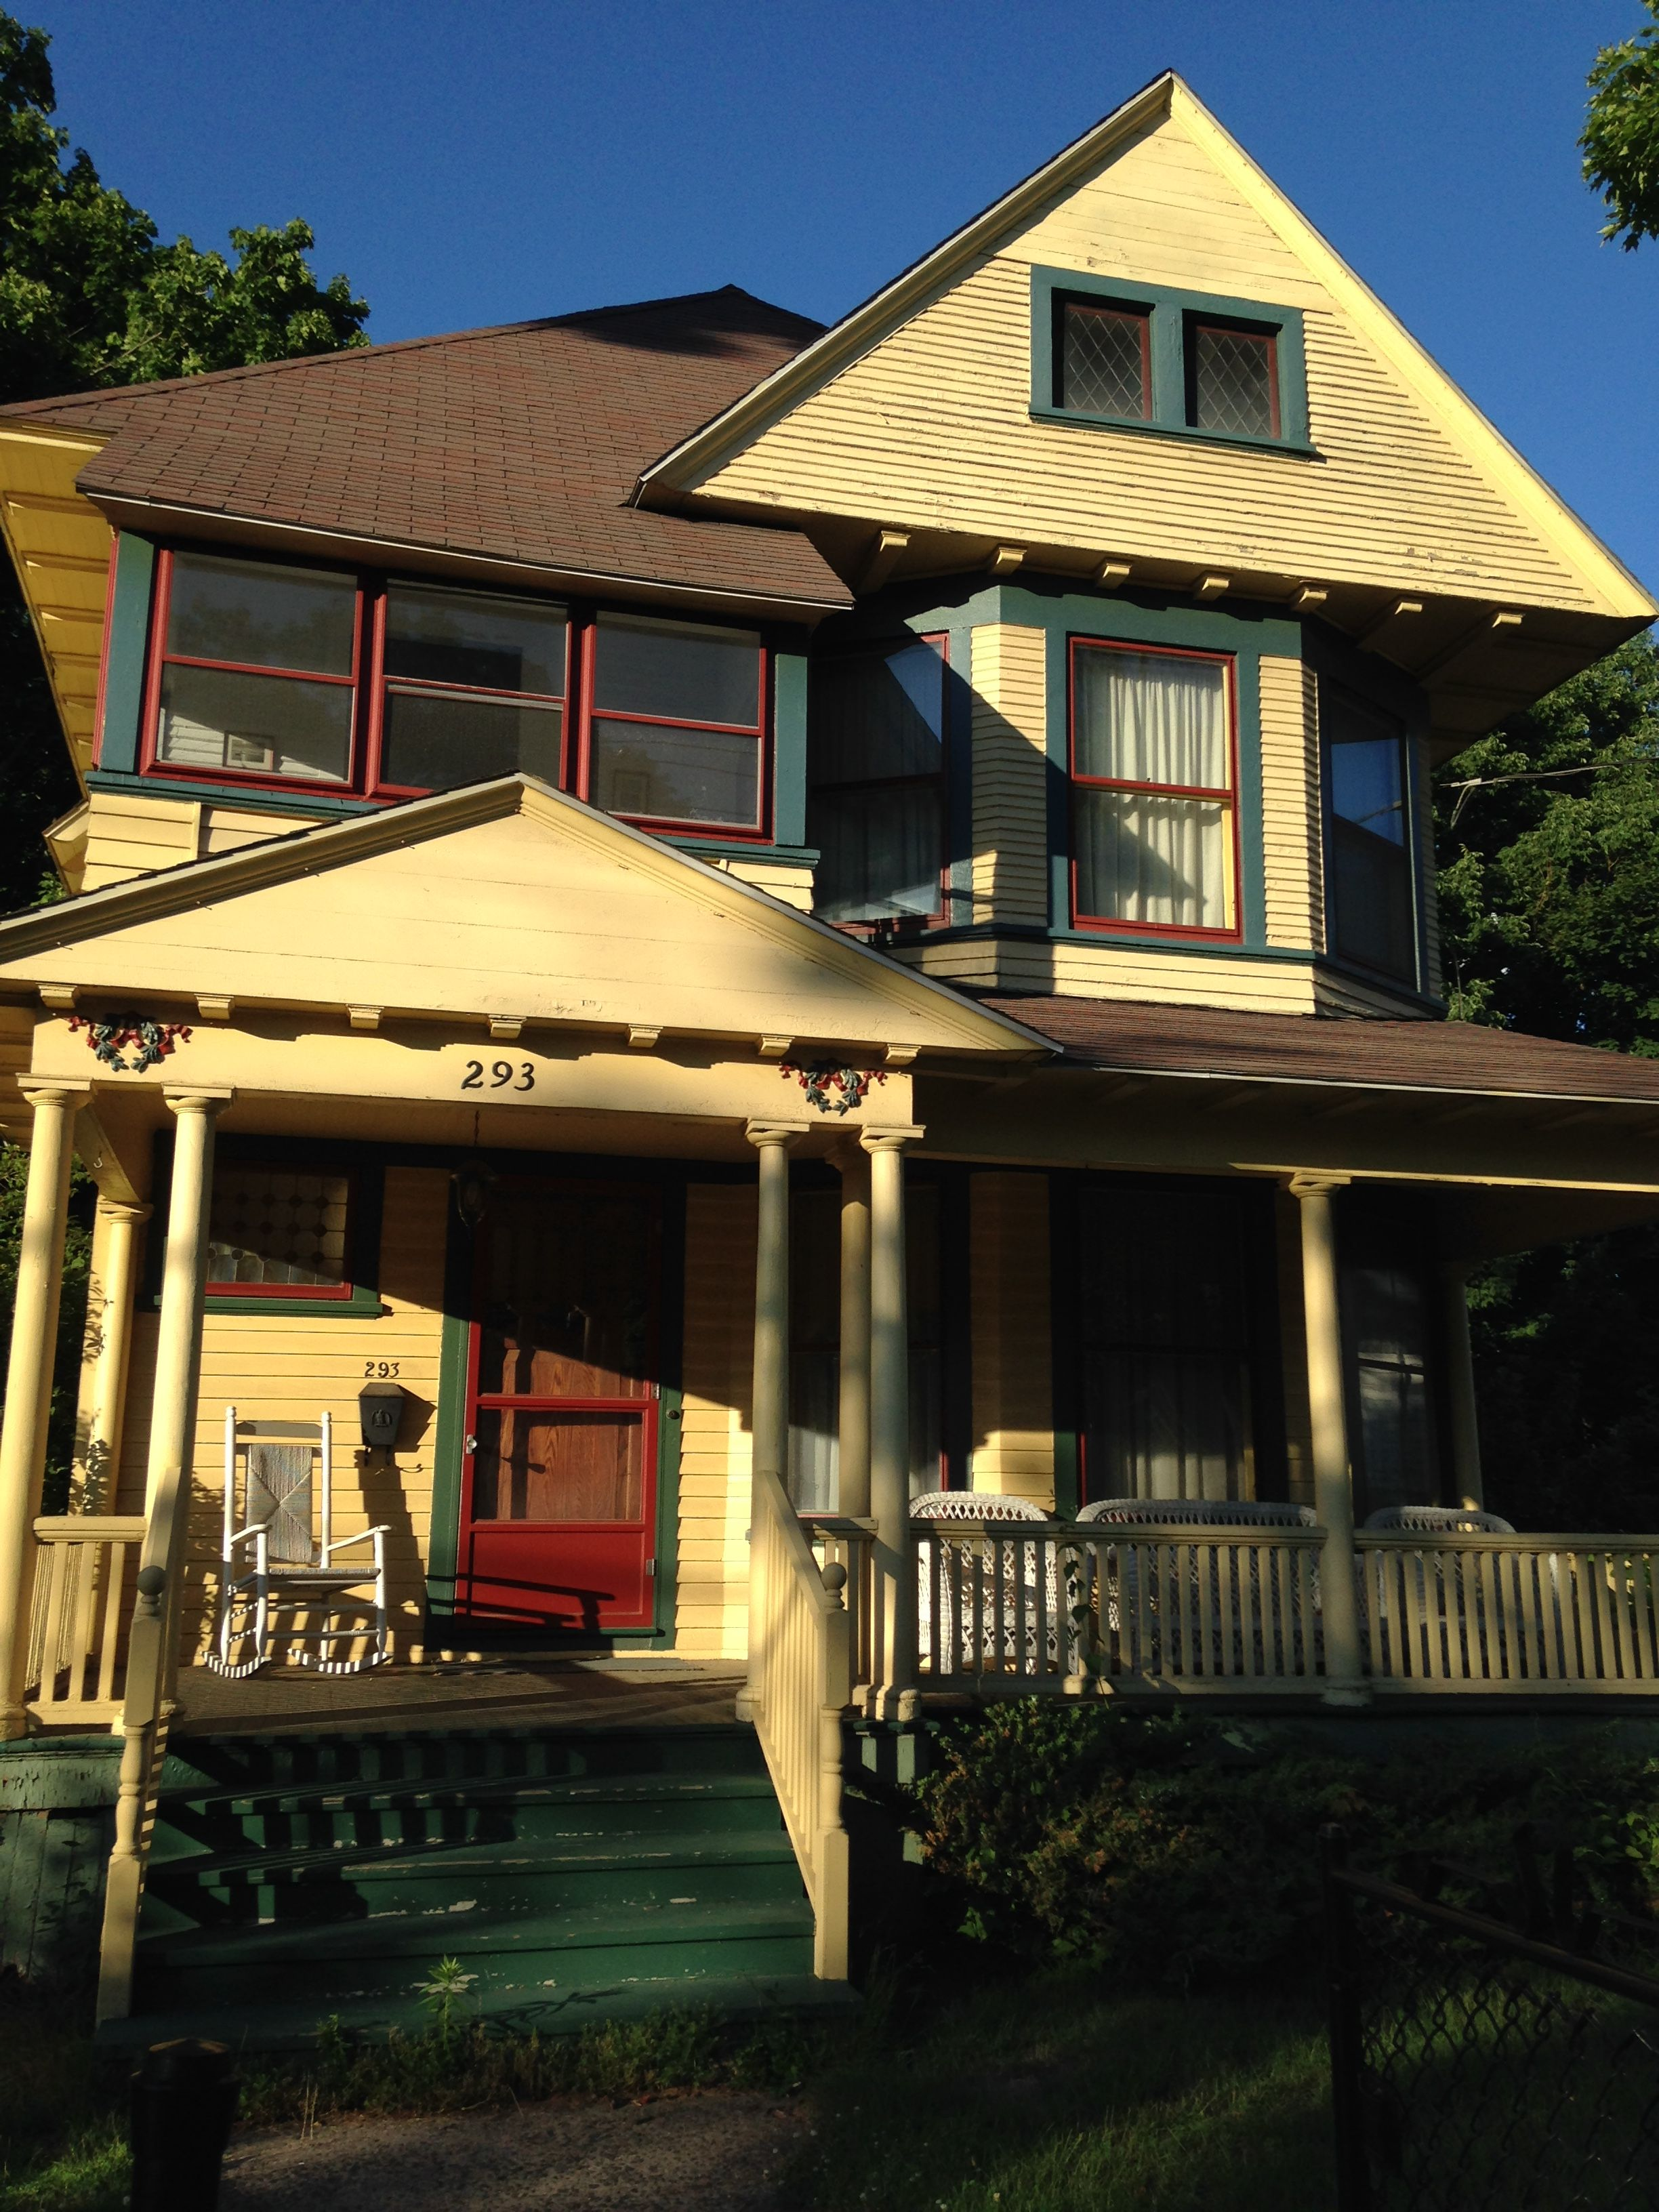 The Victorian House My Family Is Trying To Buy